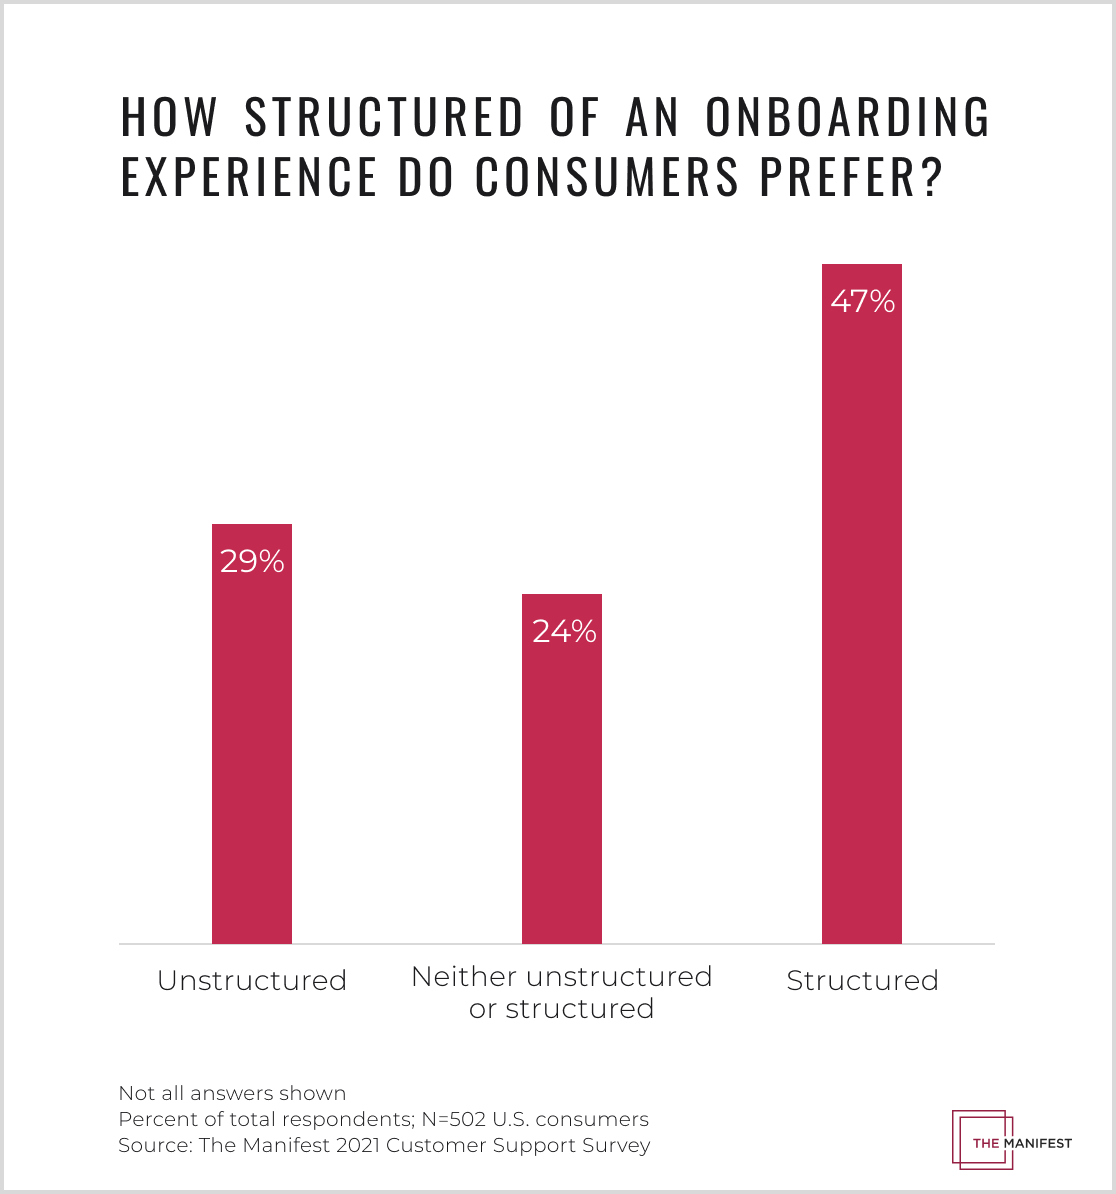 Consumers prefer a structured customer onboarding process compared to an unstructured onboarding experience.